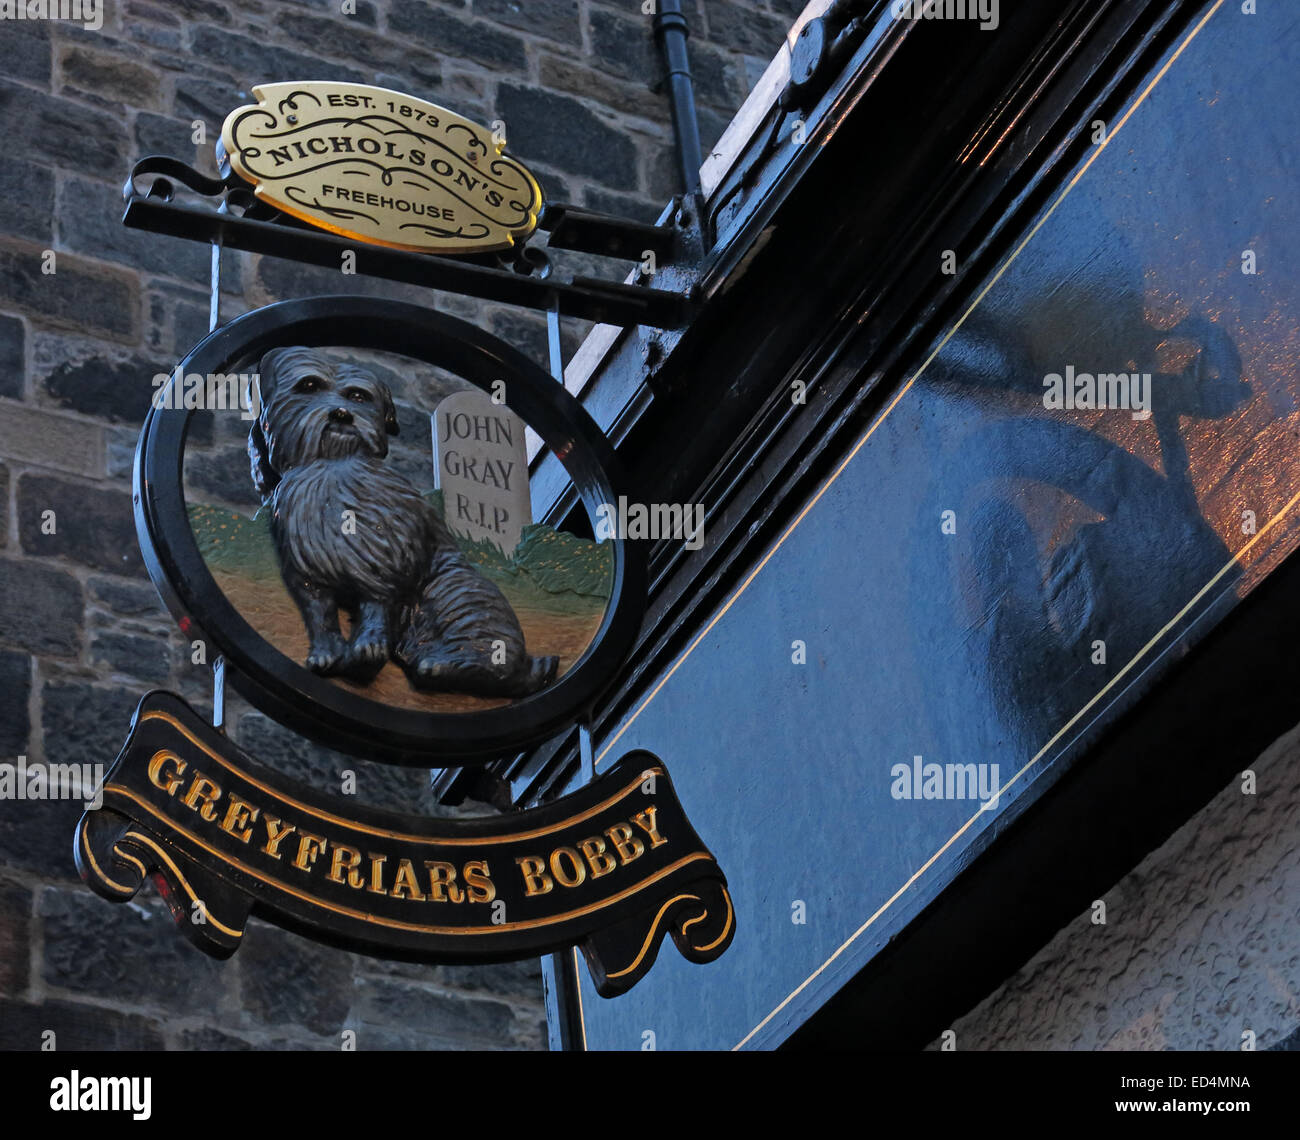 34,Candlemaker,Row,city,of,tourist,tourism,attraction,ale,house,alehouse,CAMRA,real,royal,companion,Old,Town,brass,Dog,outside,Lothians,Scotland,UK,Nicholson,freehouse,company,bar,Chambers,Street,Grassmarket,and,George,IV,Bridge,Georgian,houses,scruffy,Skye,terrier,EH12QE,EH1,2QE,sign,outside,night,GoTonySmith,bars,different,shot,of,near,graveyard,traditional,John,Grey,Gray,RIP